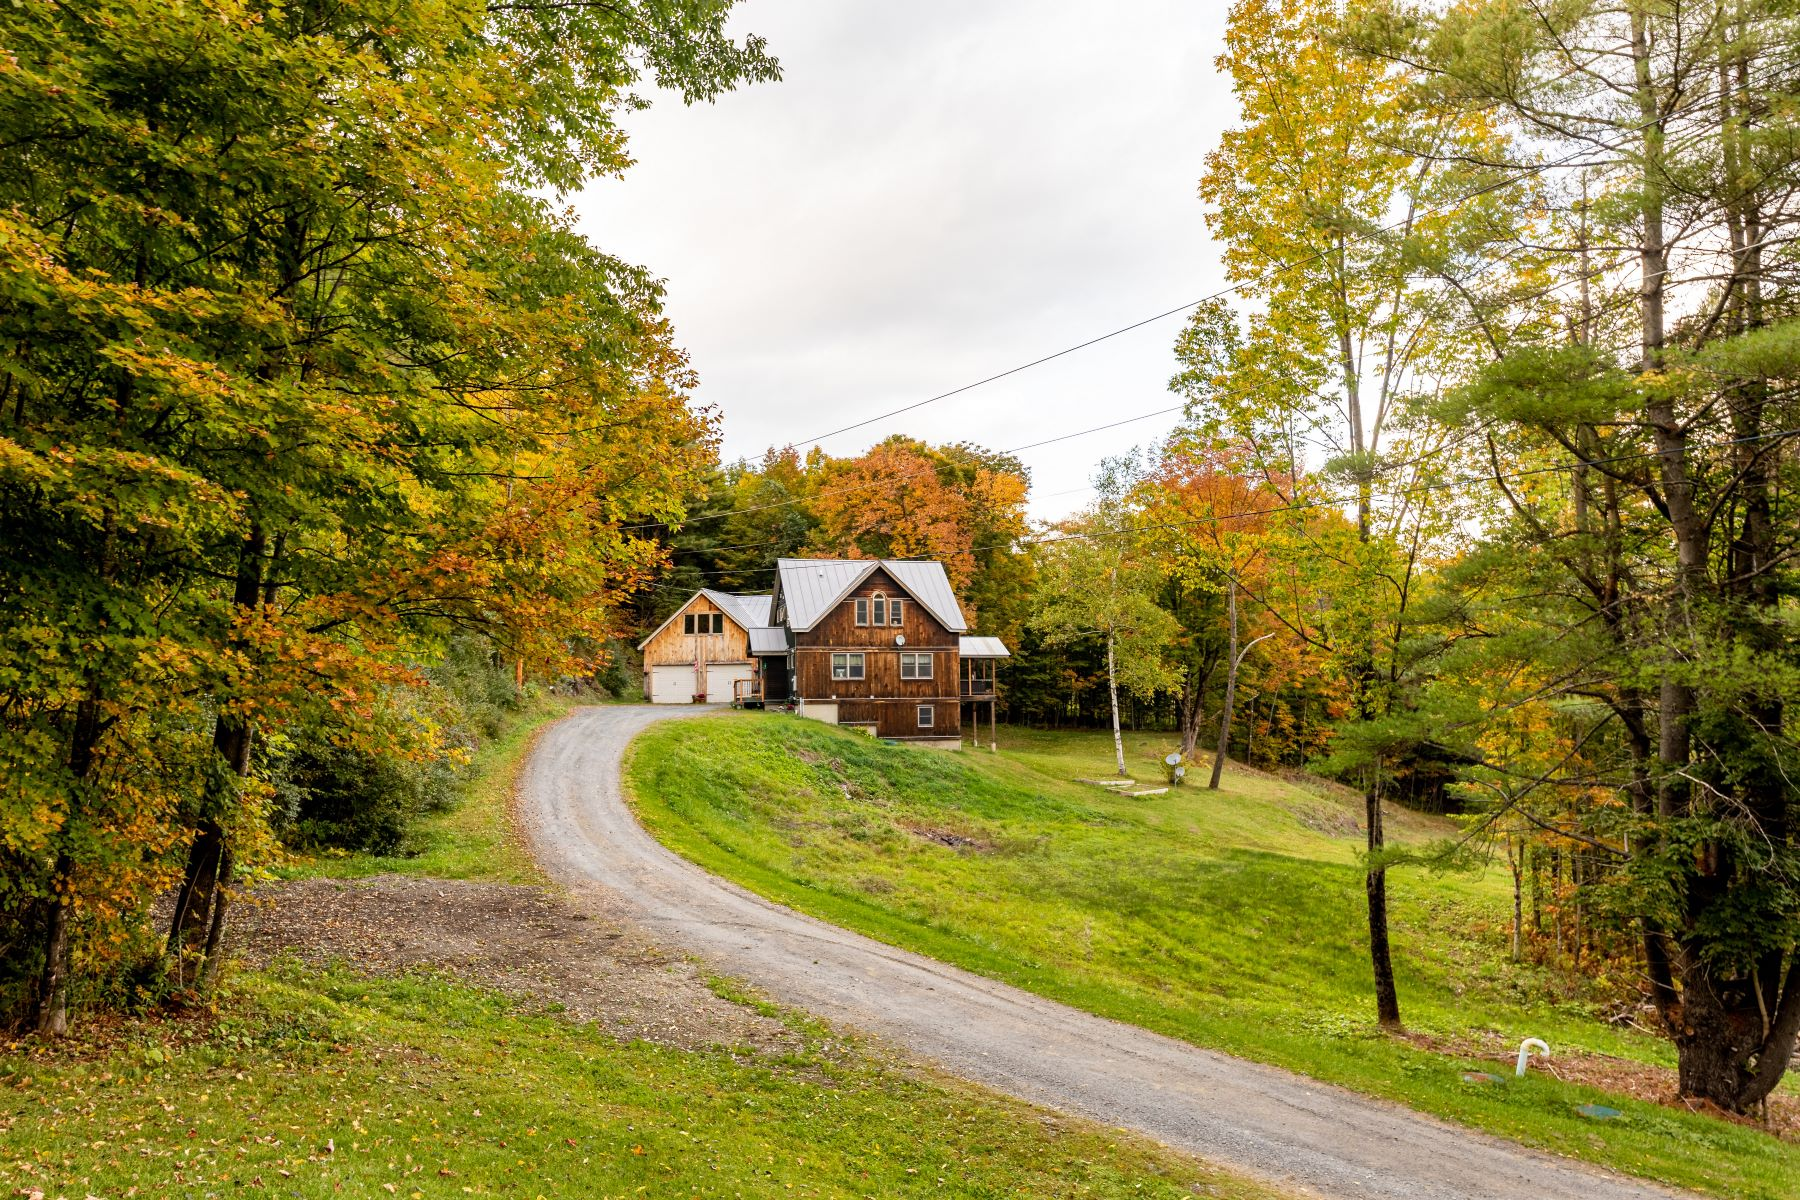 Single Family Homes for Sale at A Place to Call Home 2 O'neil Ln Strafford, Vermont 05070 United States